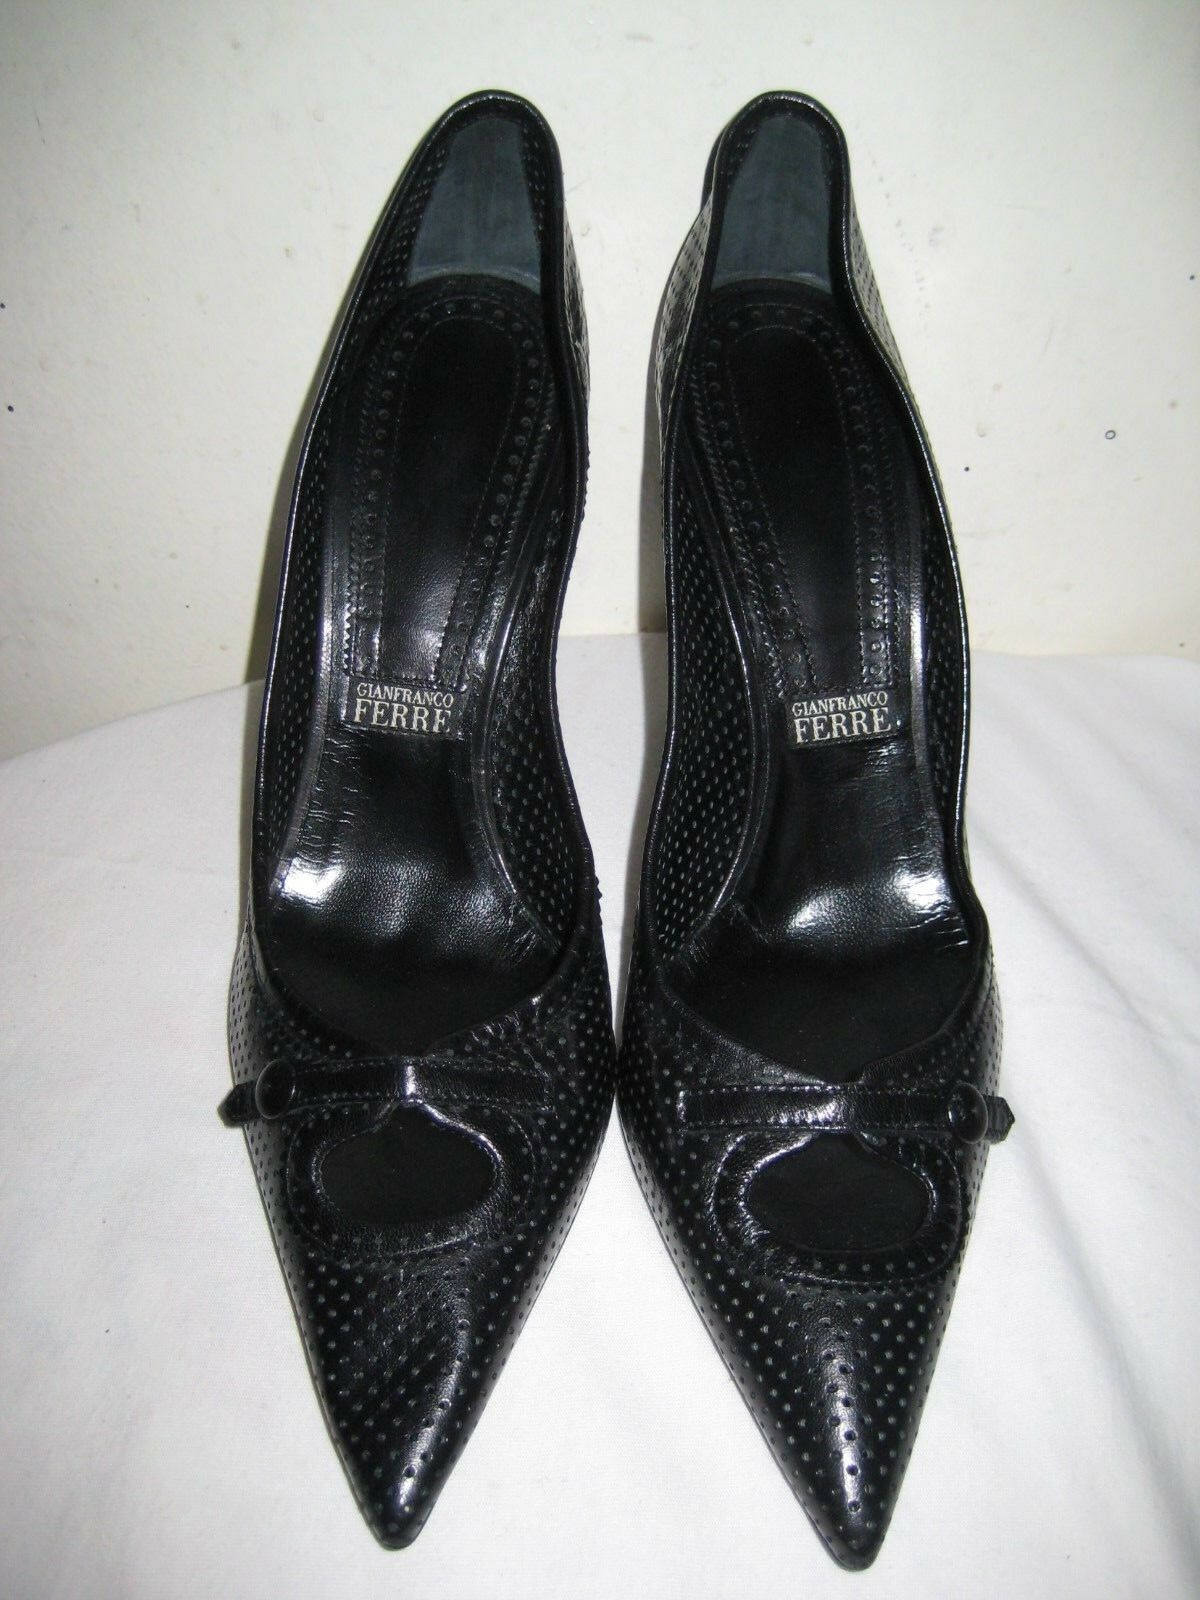 GIANFRANCO GIANFRANCO GIANFRANCO FERRE Leather Black Pumps Heel Pointy shoes Women's Size 41   10-10.5 3b246d